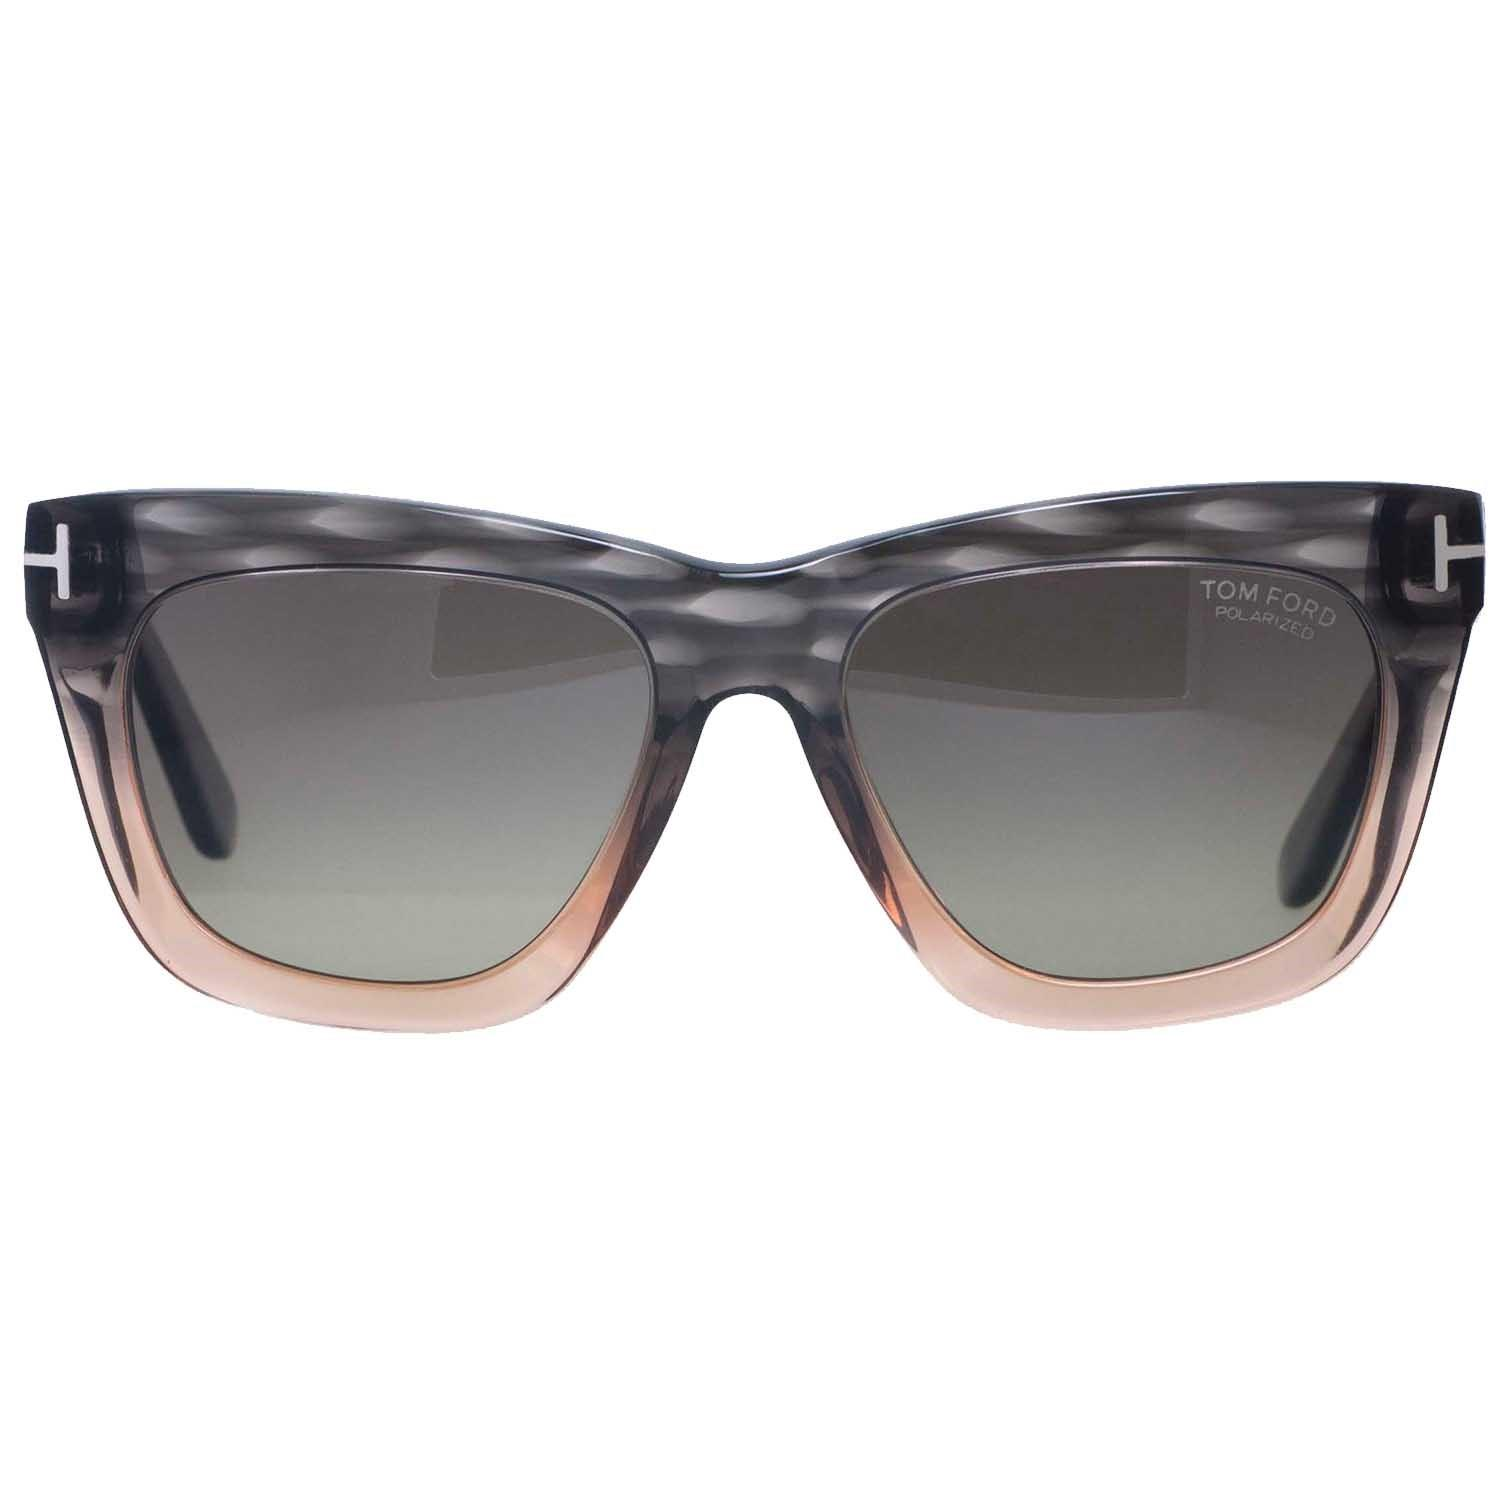 41885ed889f7 Lyst - Tom Ford Ft0361 Celina Square Sunglasses